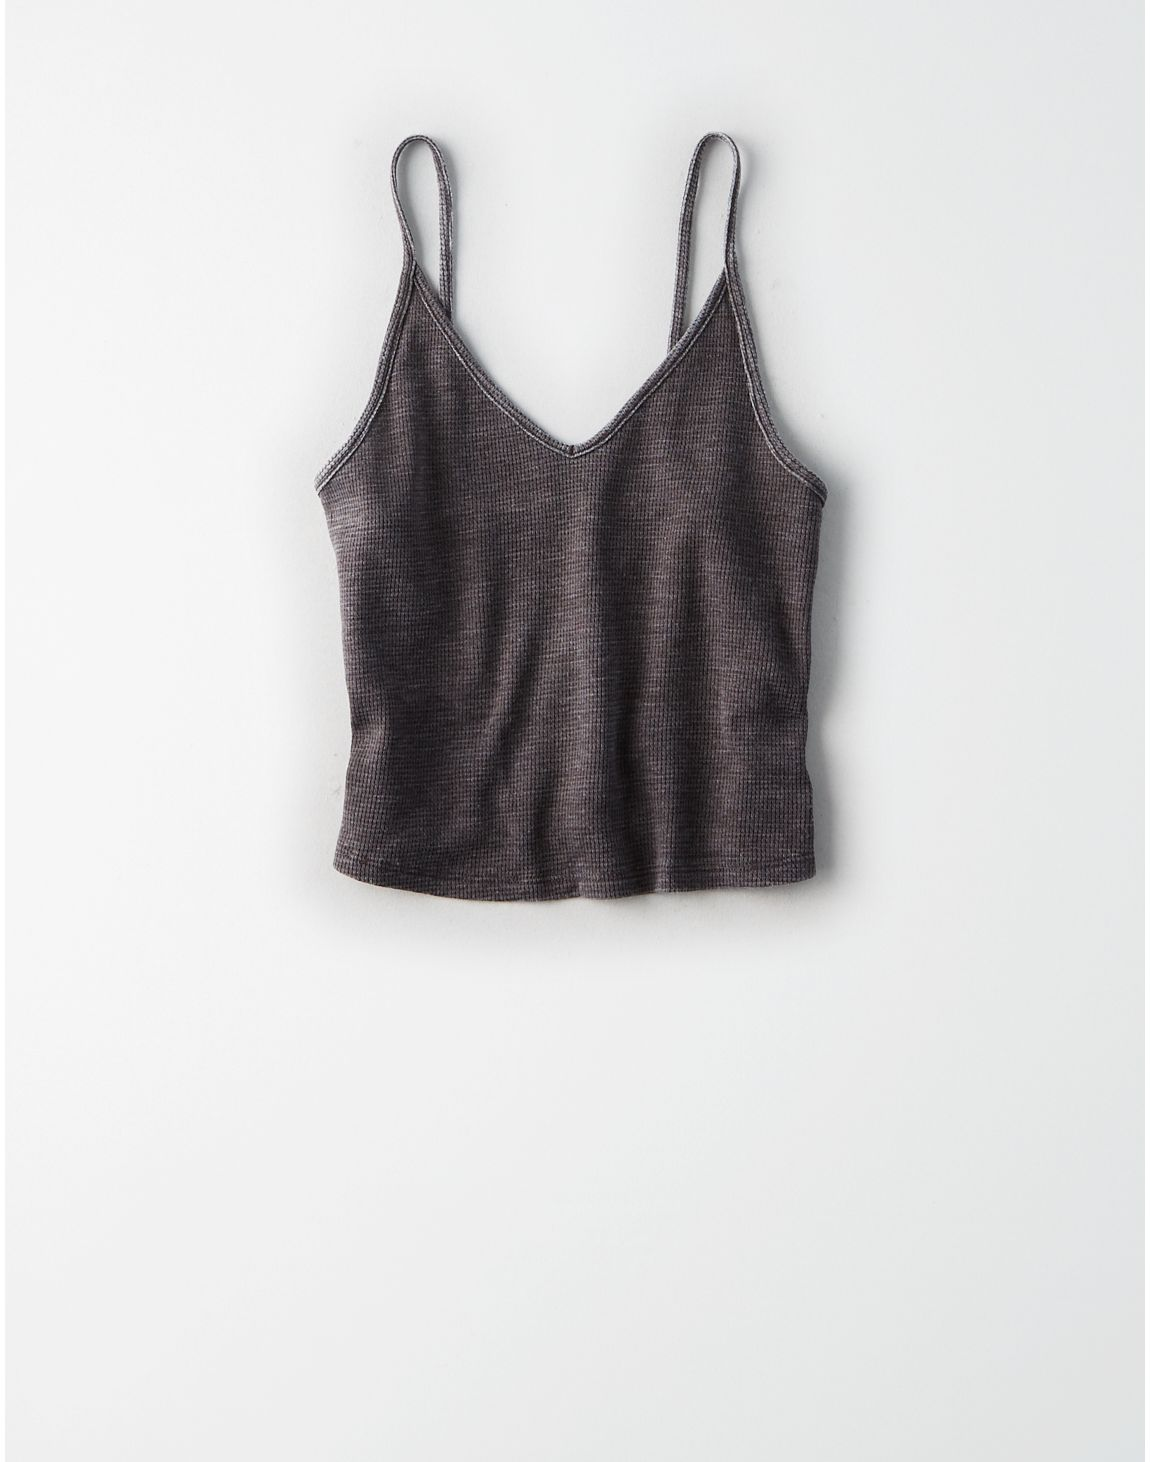 96598f981fe American Eagle | AE Cropped Tank Top in Gray | American Eagle Style Drop